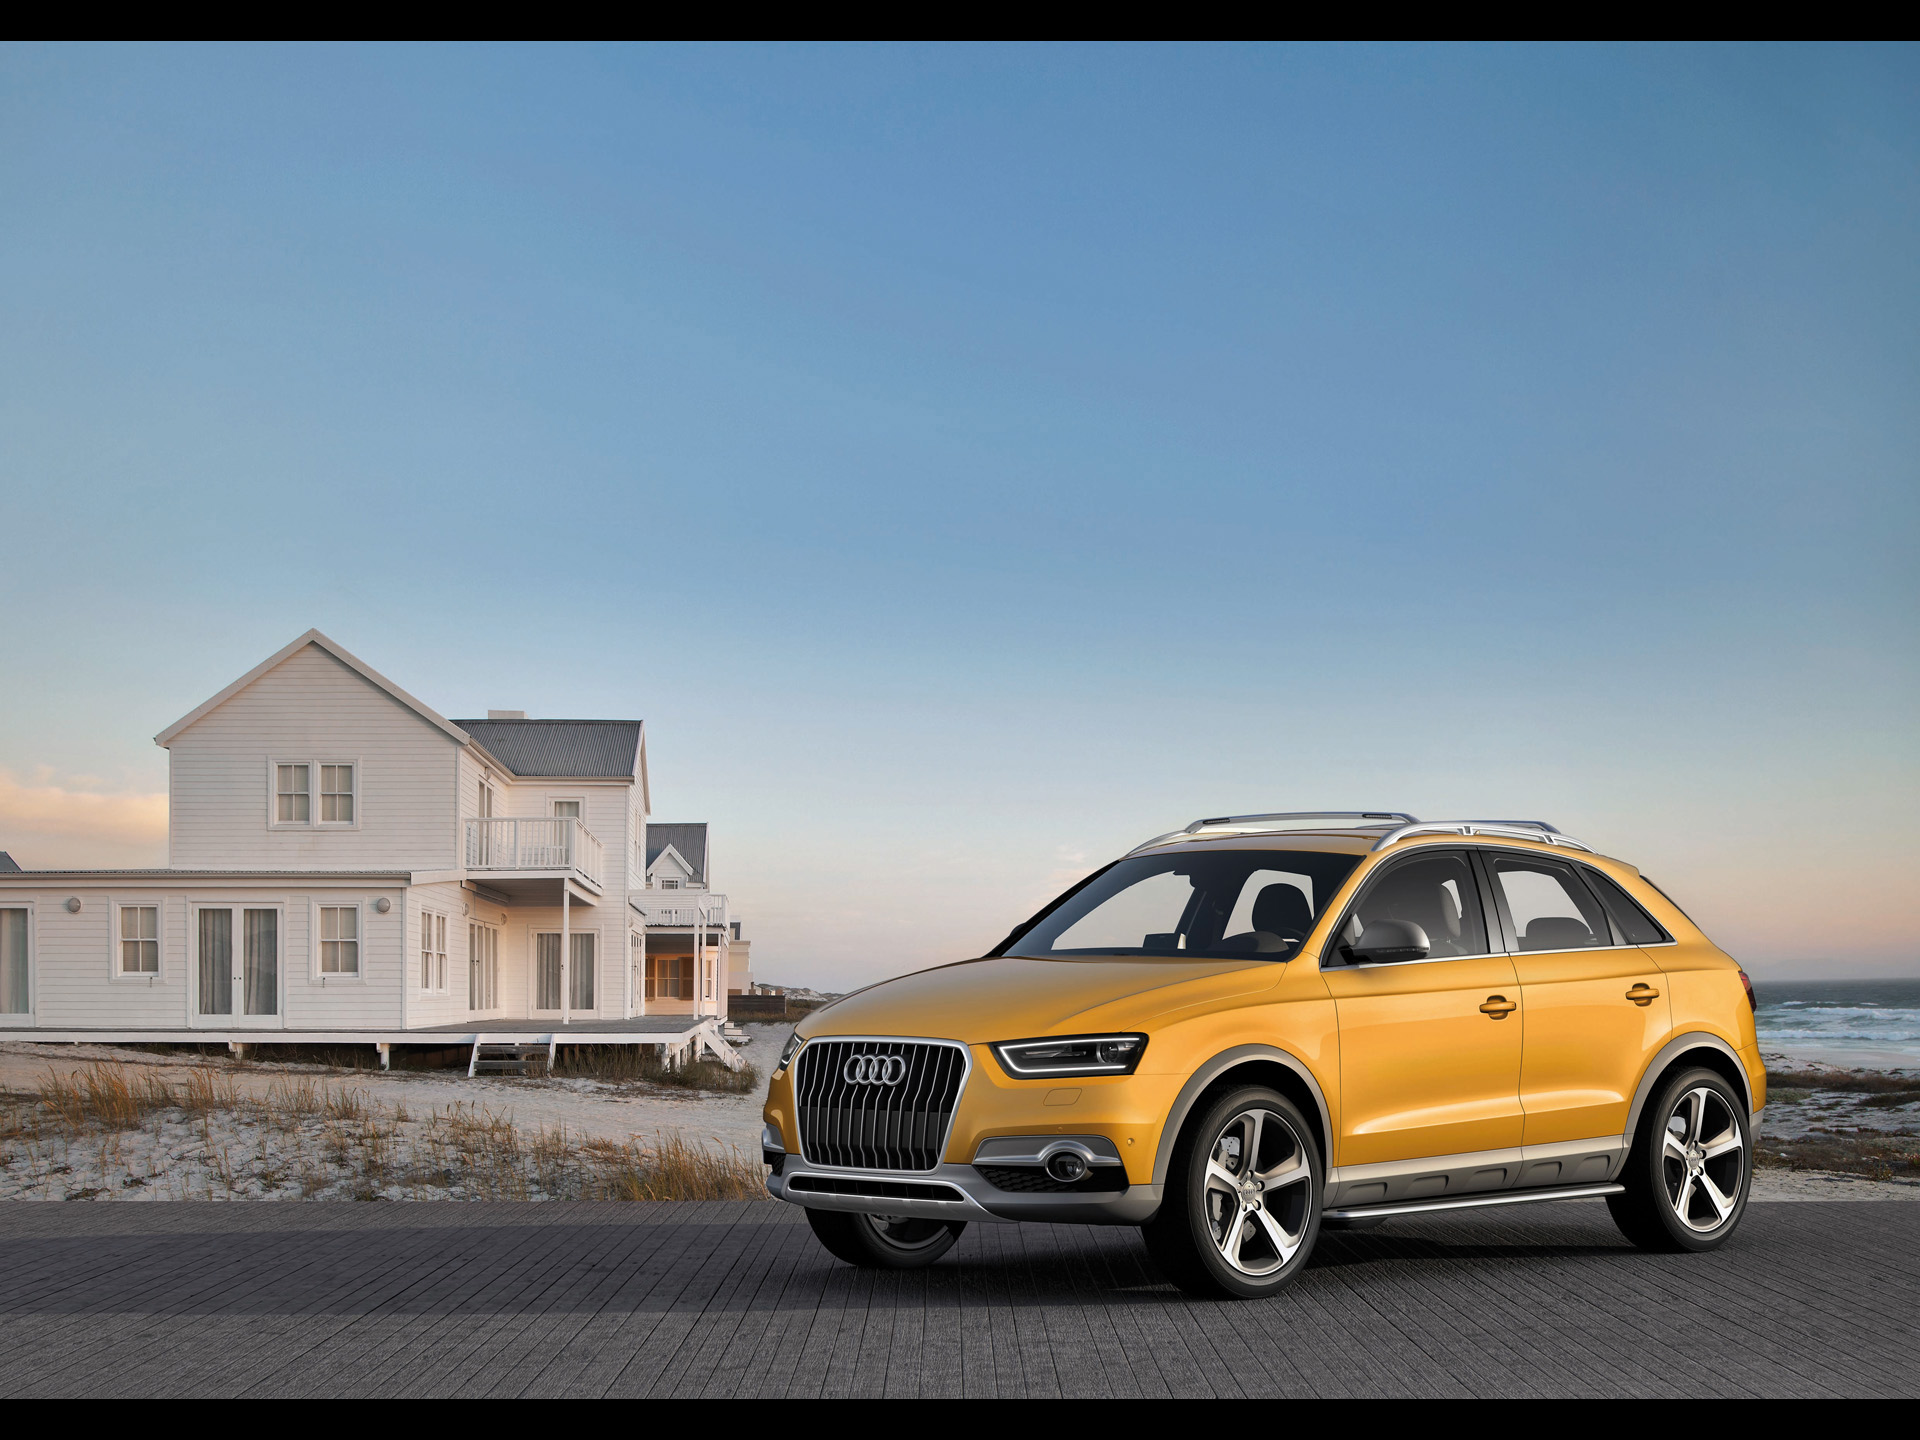 2012 yellow audi q3 jinlong yufeng side angle wallpapers 2012 yellow audi q3 jinlong yufeng. Black Bedroom Furniture Sets. Home Design Ideas